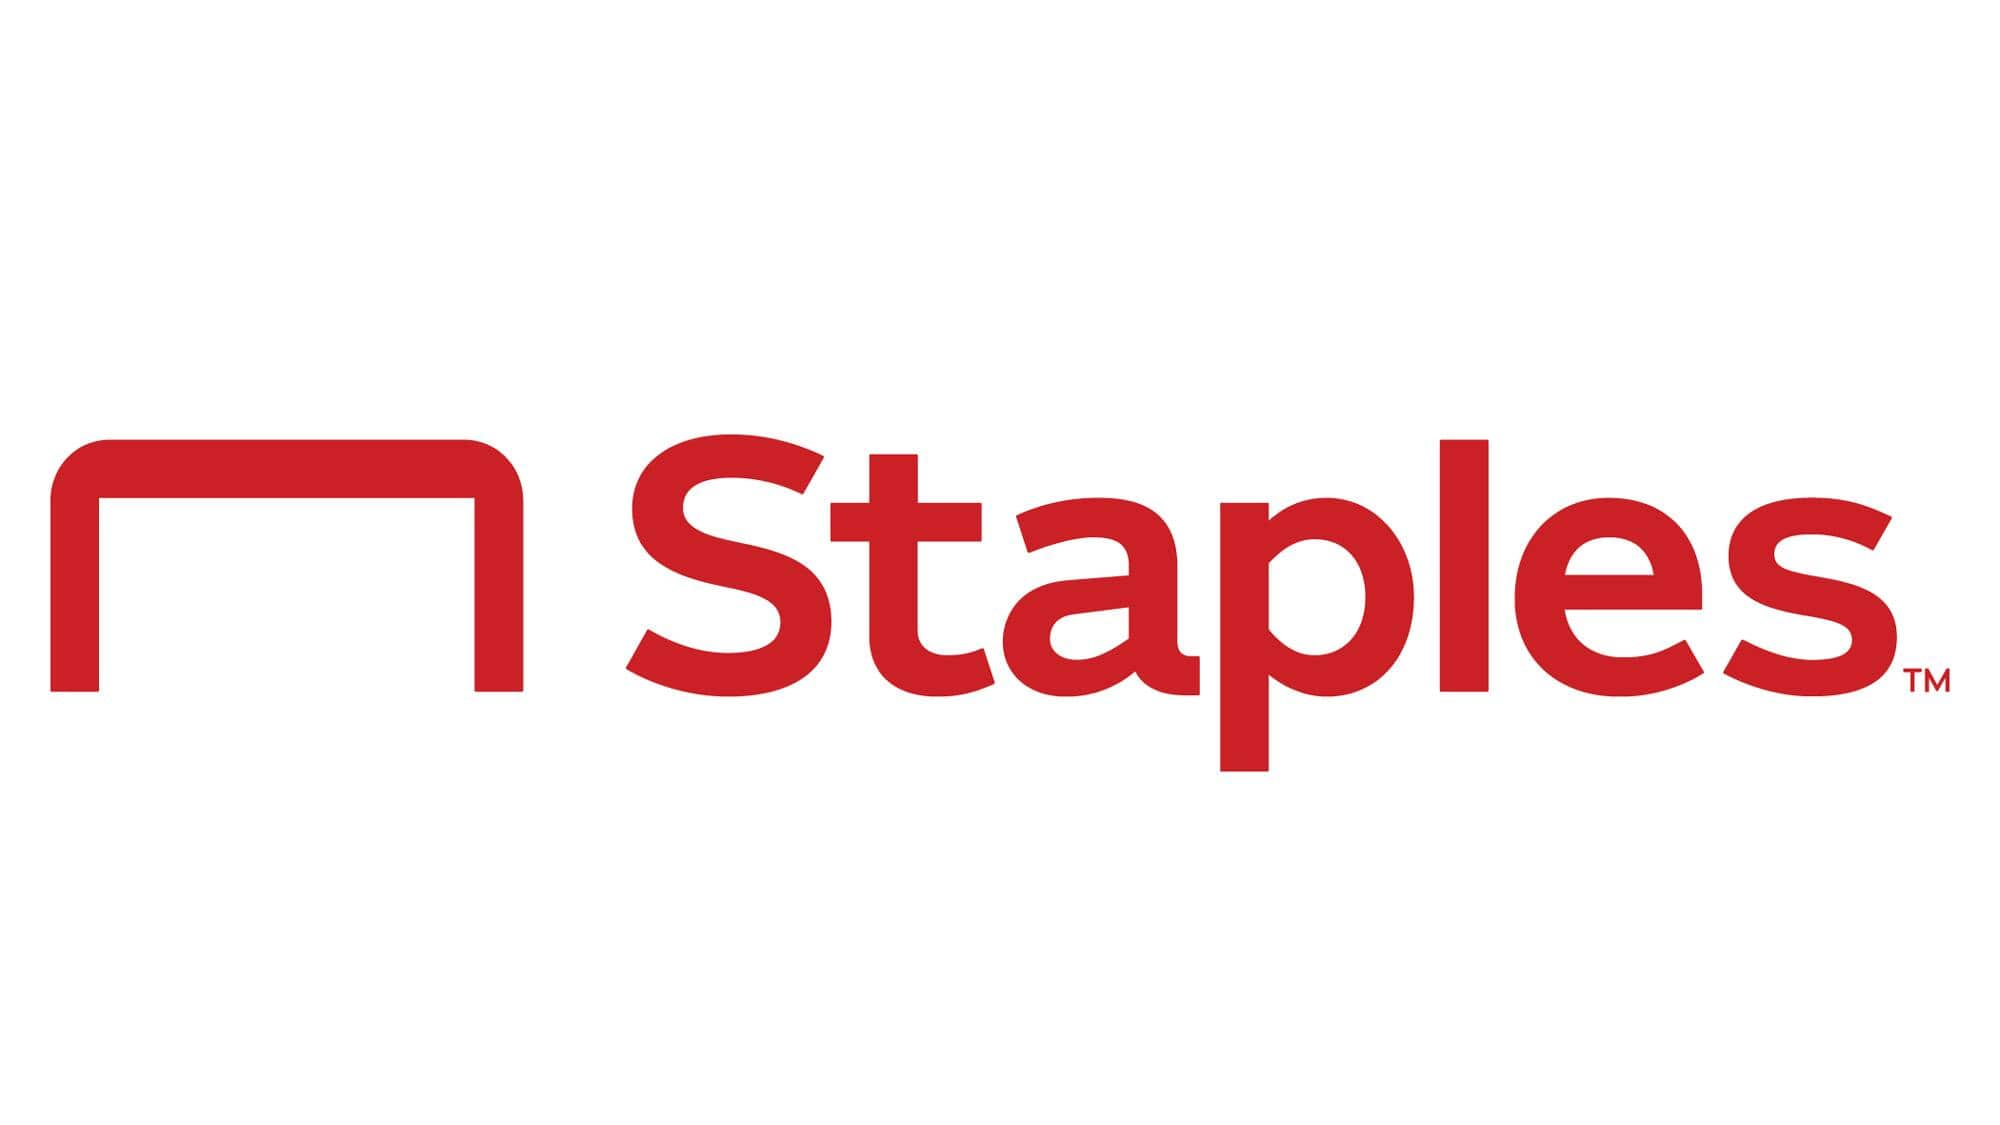 Staples Online Coupon: $20 Off $100 or more  + Free Shipping (6/15 - 6/19)